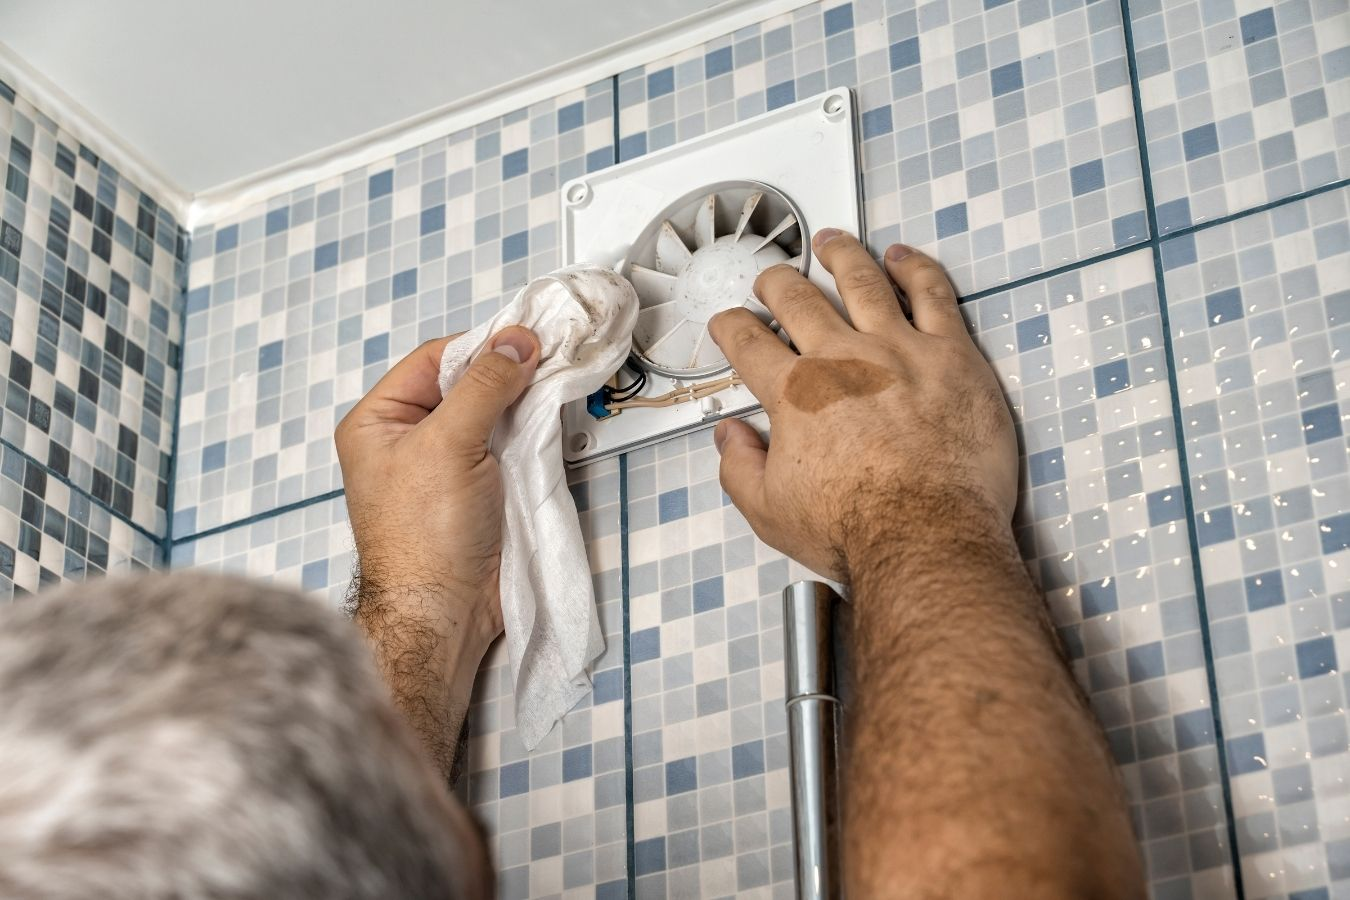 A man installing a through the wall exhaust fan in a bathroom